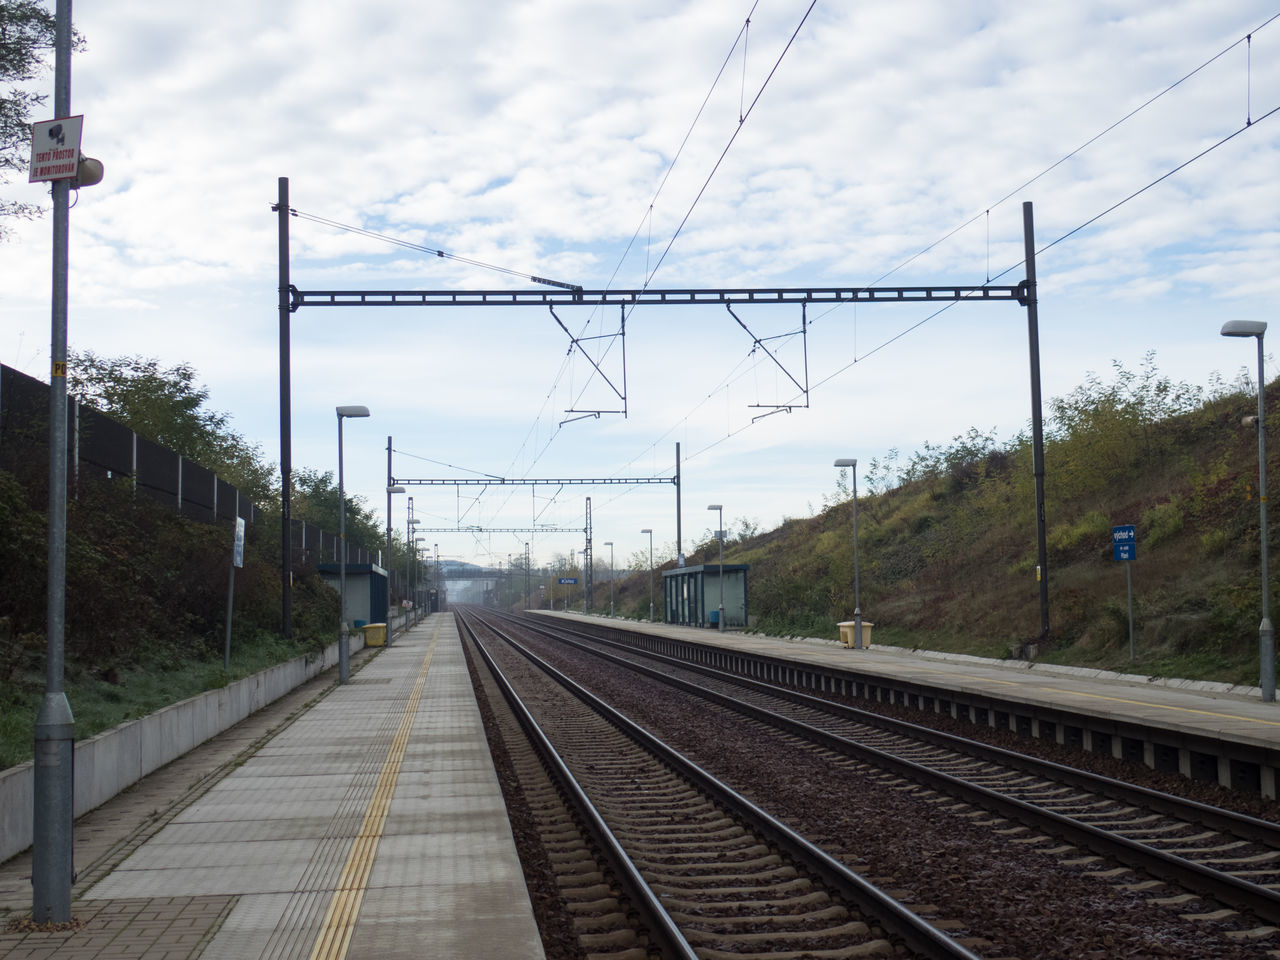 railroad track, cable, rail transportation, transportation, power line, electricity pylon, electricity, power supply, sky, day, cloud - sky, public transportation, connection, outdoors, no people, railway track, nature, technology, tree